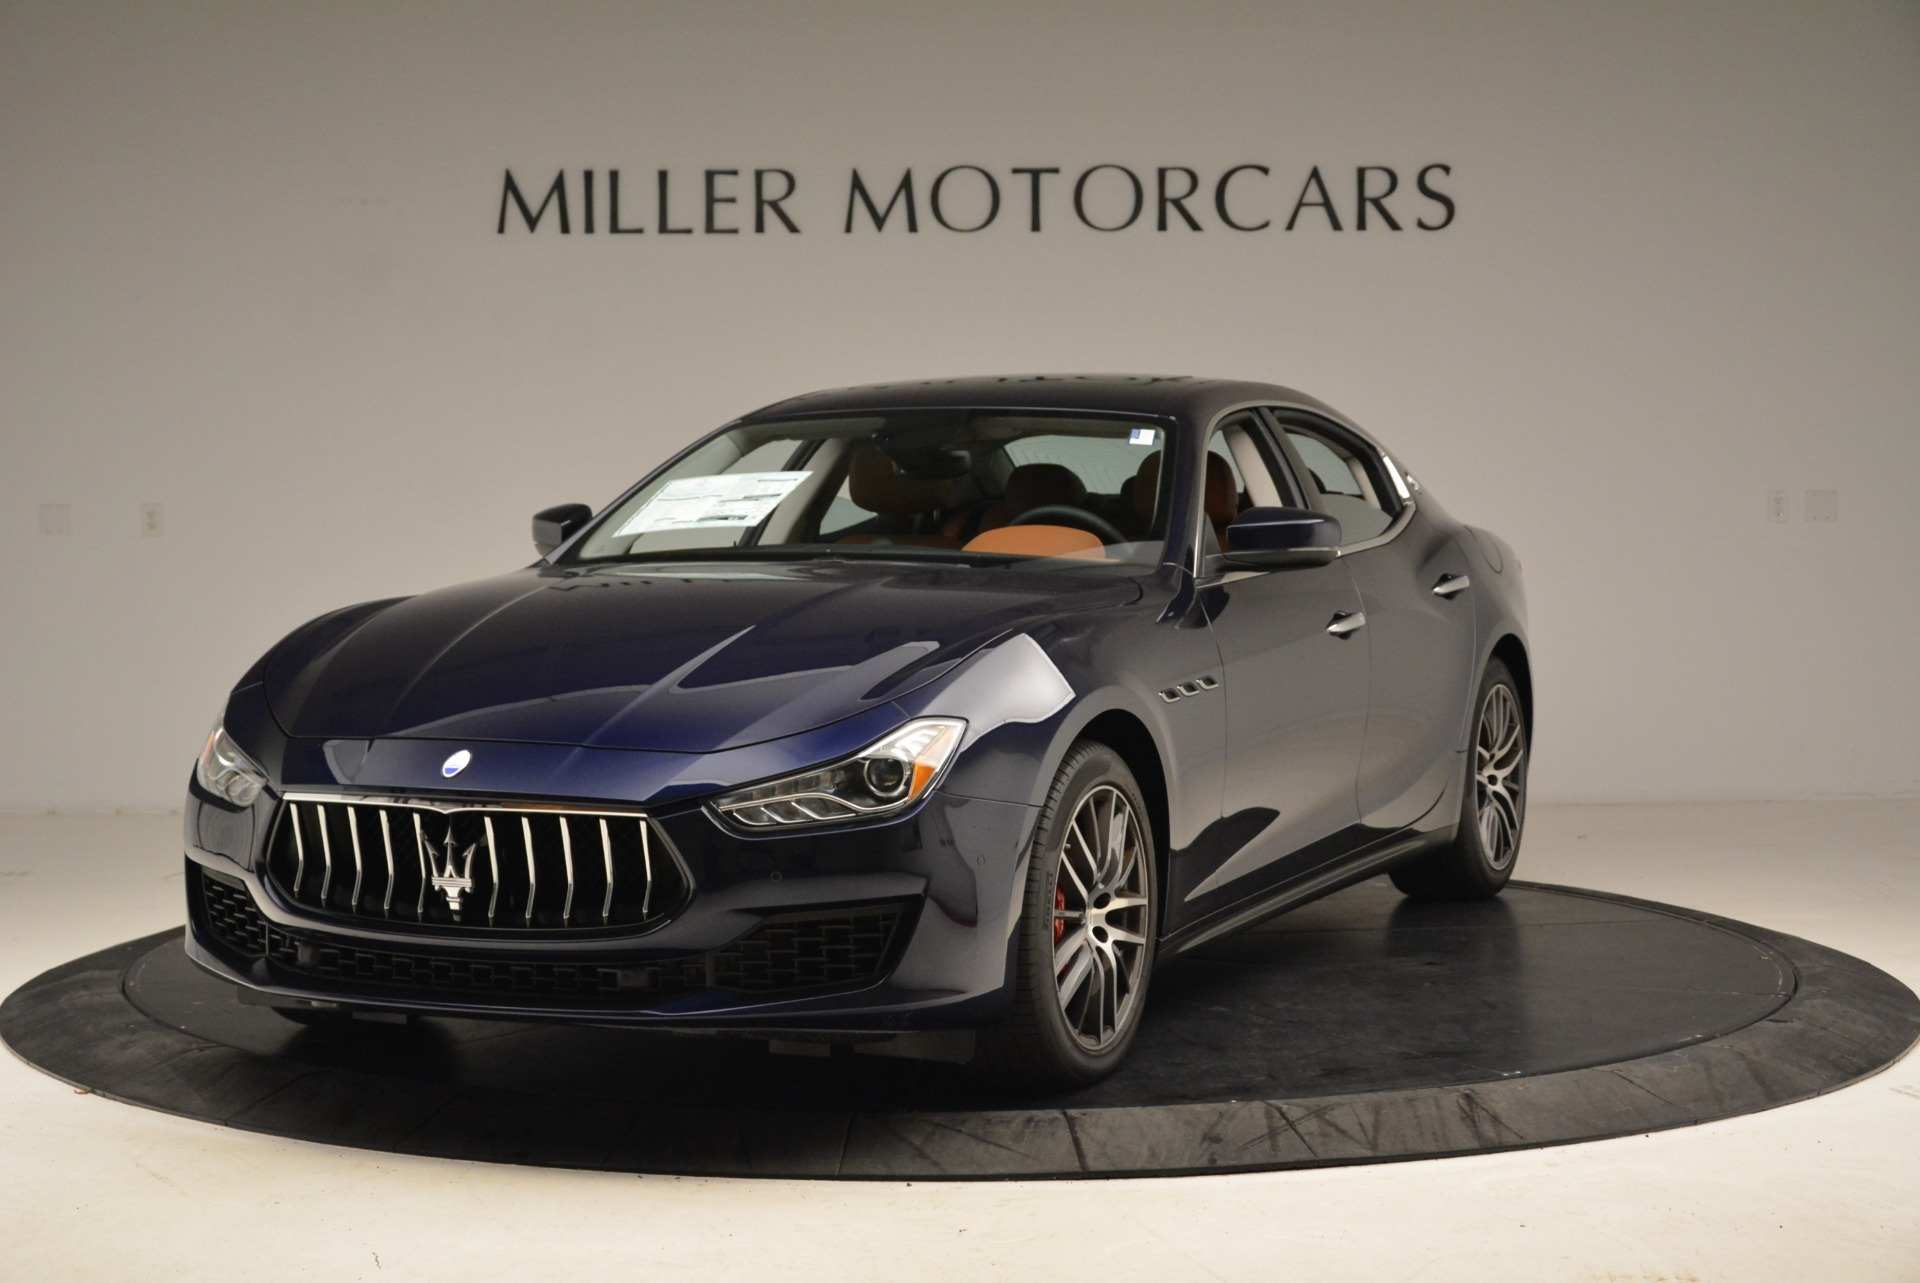 New 2019 Maserati Ghibli S Q4 for sale $59,900 at Bentley Greenwich in Greenwich CT 06830 1